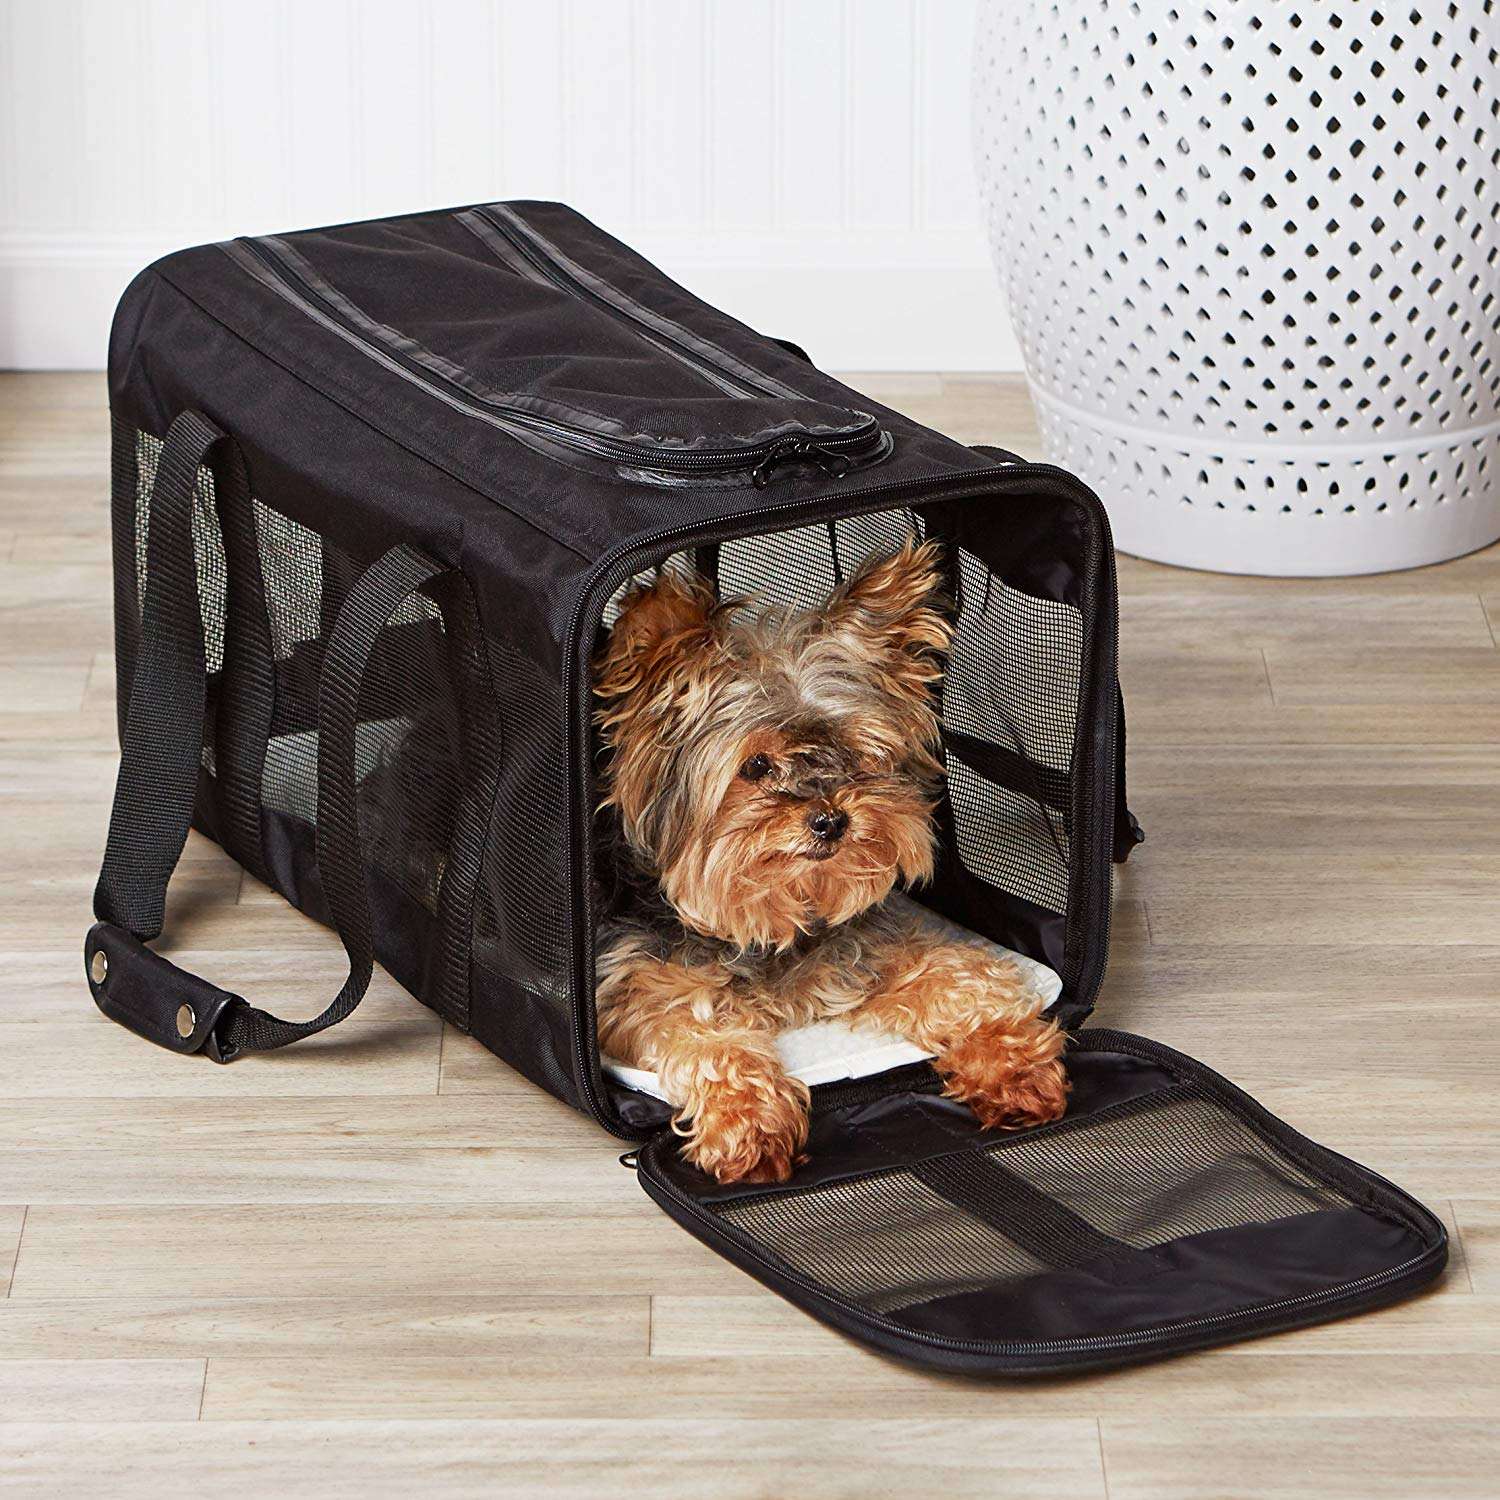 AmazonBasics Soft-Sided Pet Travel Carrier with a doggie inside